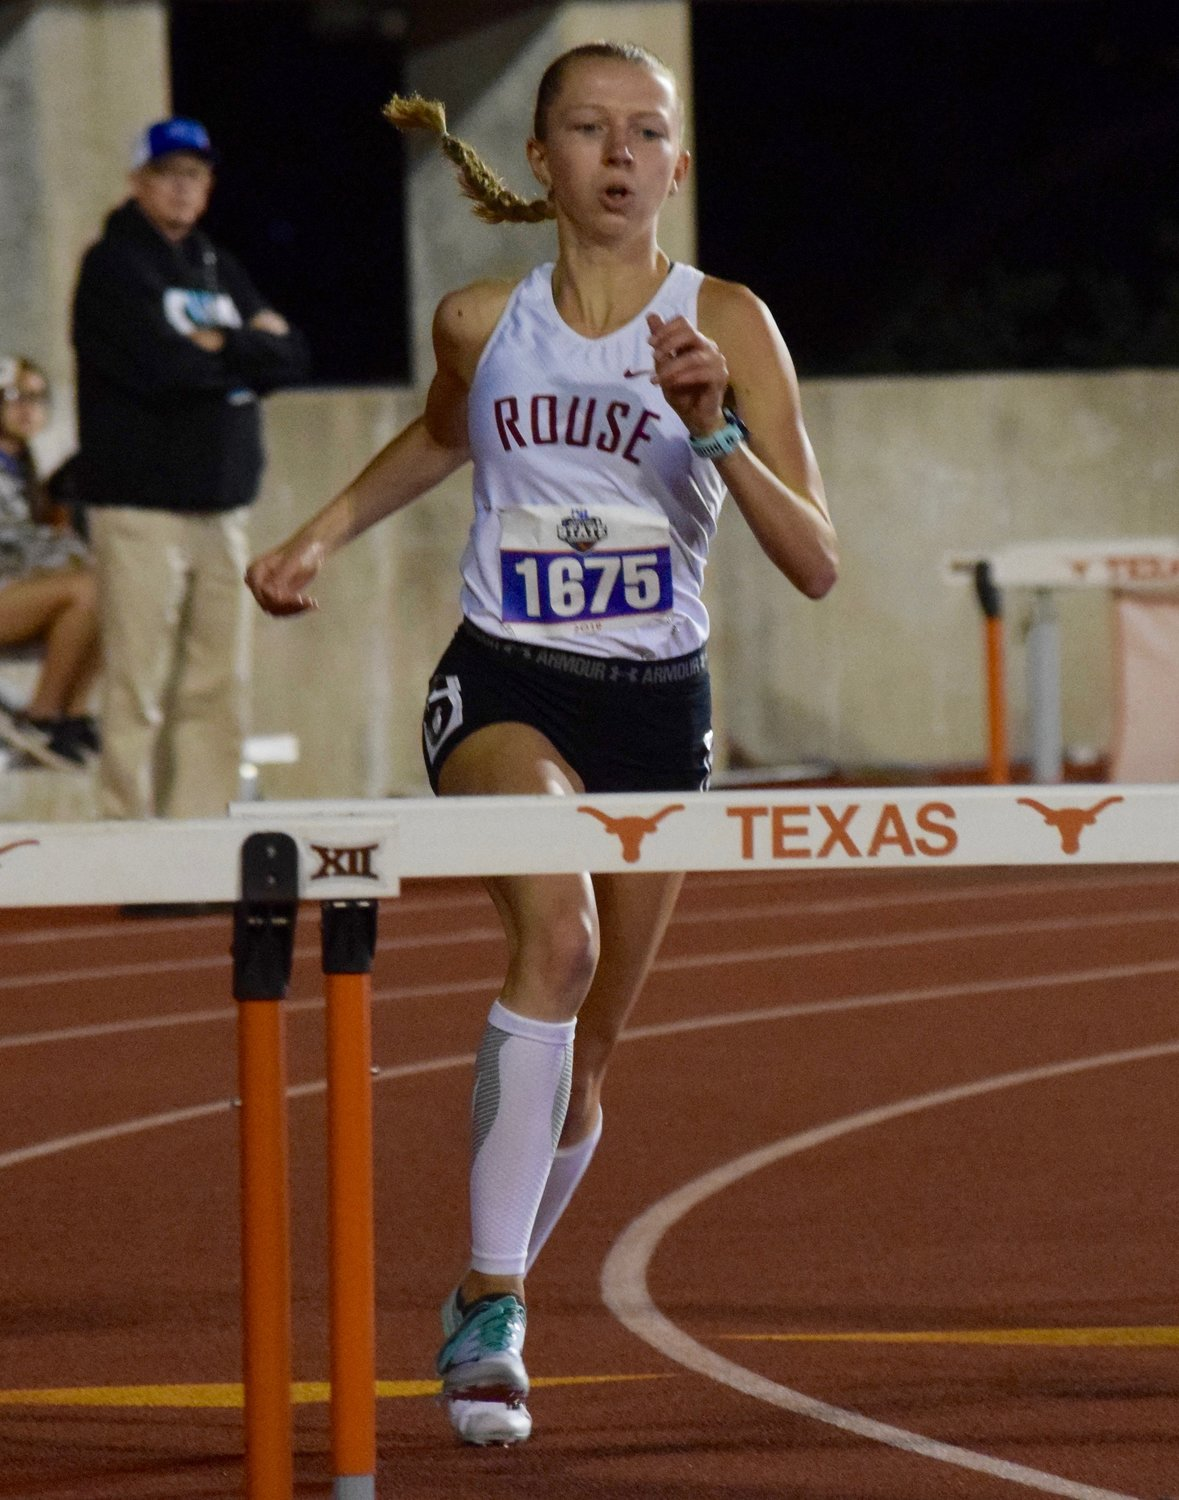 Rouse senior Abby Bendle finished third in the 5A girls' 300-meter hurdles at the UIL State Track and Field Meet on Friday.